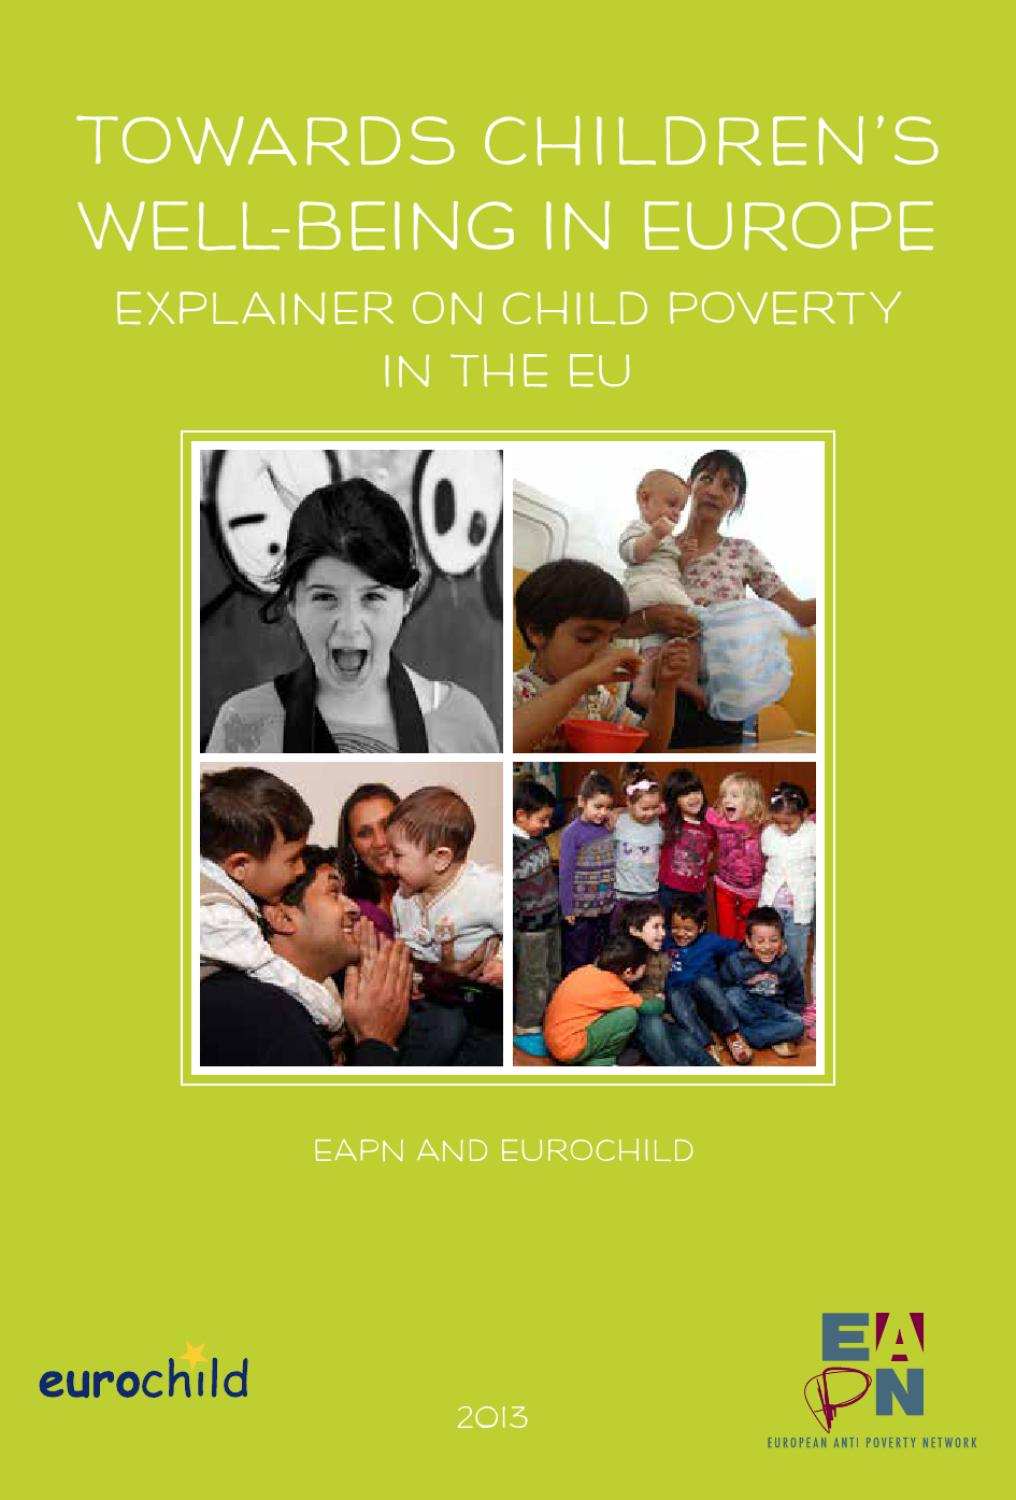 poverty in eu On the occasion of international women's day, european anti-poverty network (eapn) presented the new report: gender and poverty in europe poverty and gender inequality are two forms of social injustice, which undermine human rights, the wellbeing of individuals, as well as their capacity to develop their full potential in life.